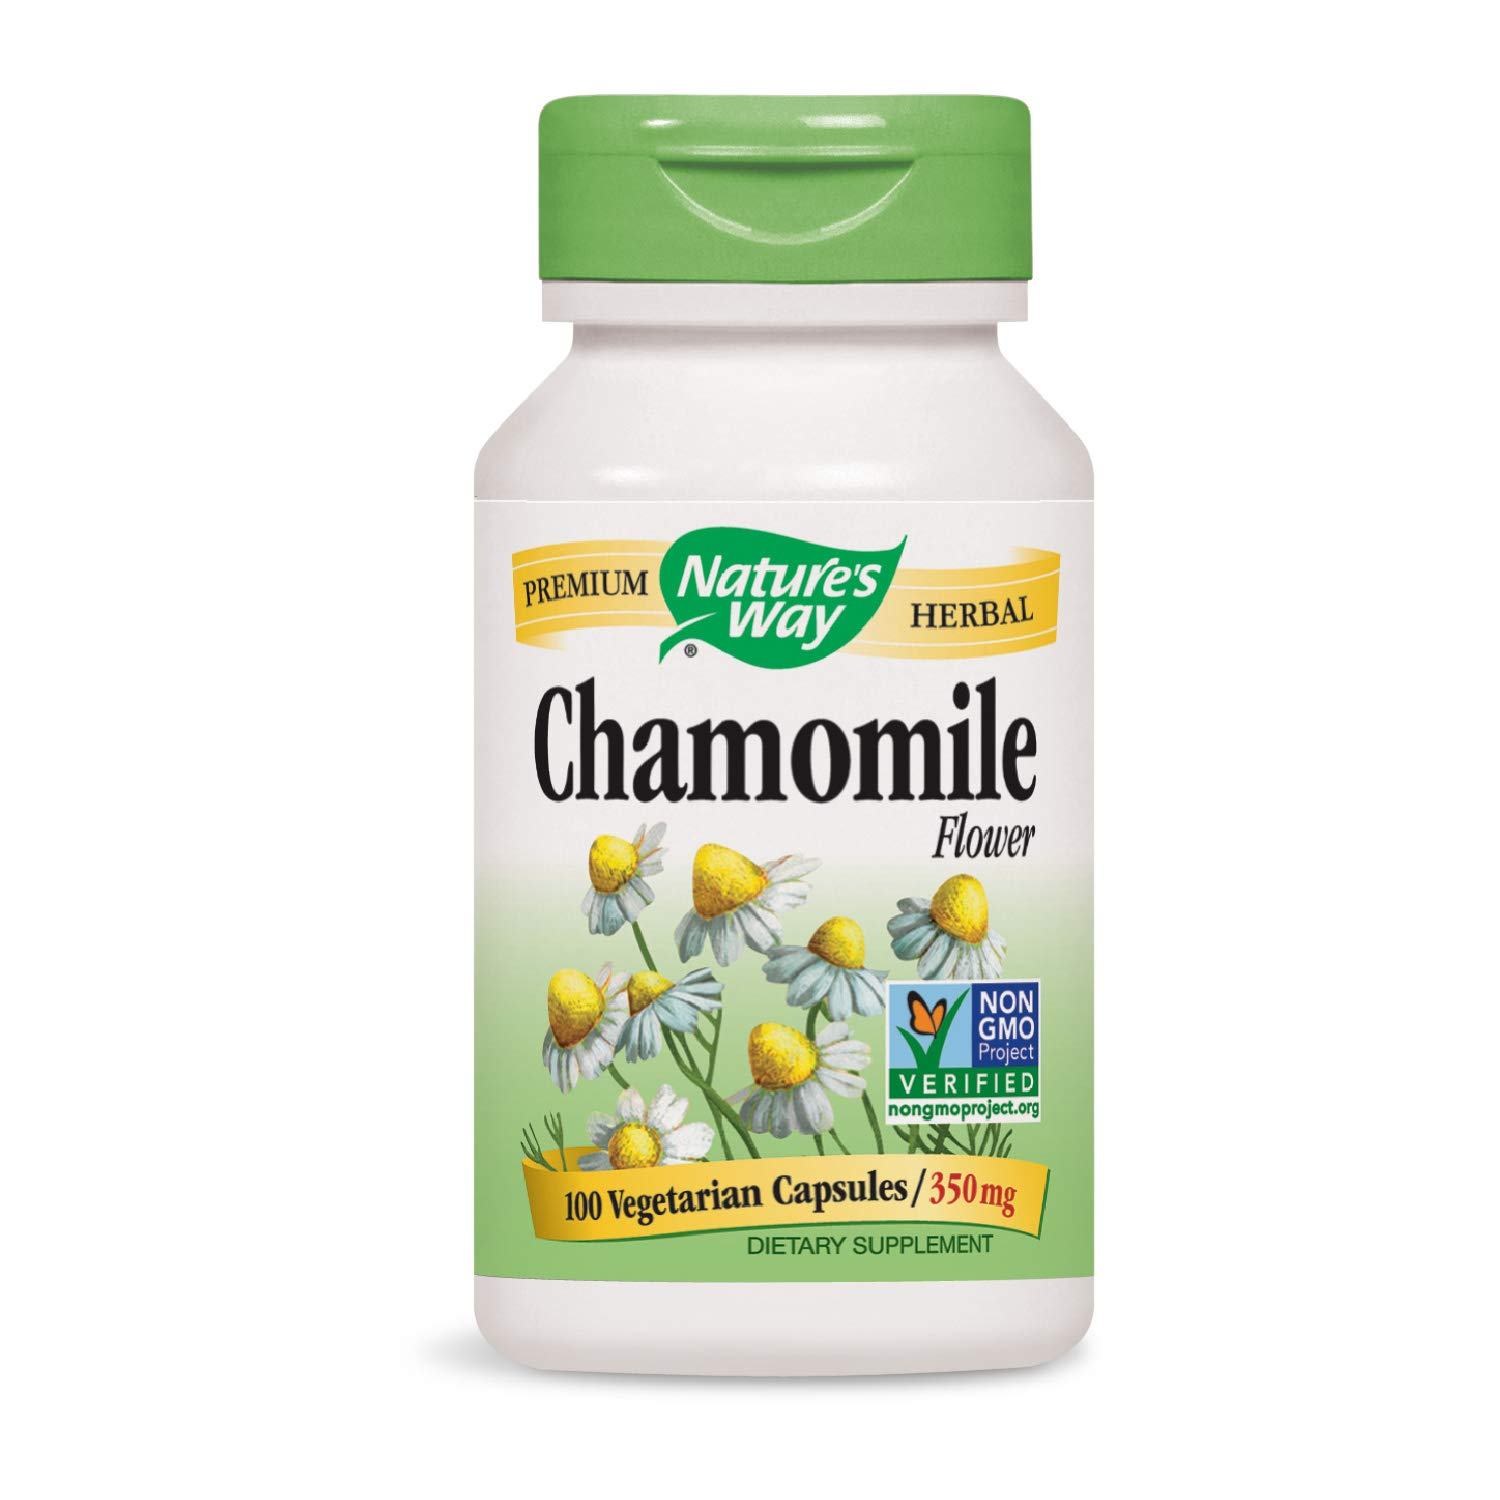 Nature's Way Chamomile Flower 350 mg, 100 VCaps (Packaging May Vary) natural sleep supplements - 61ugaMiVyIL - Natural sleep supplements – top 3 sleep supplements in the market